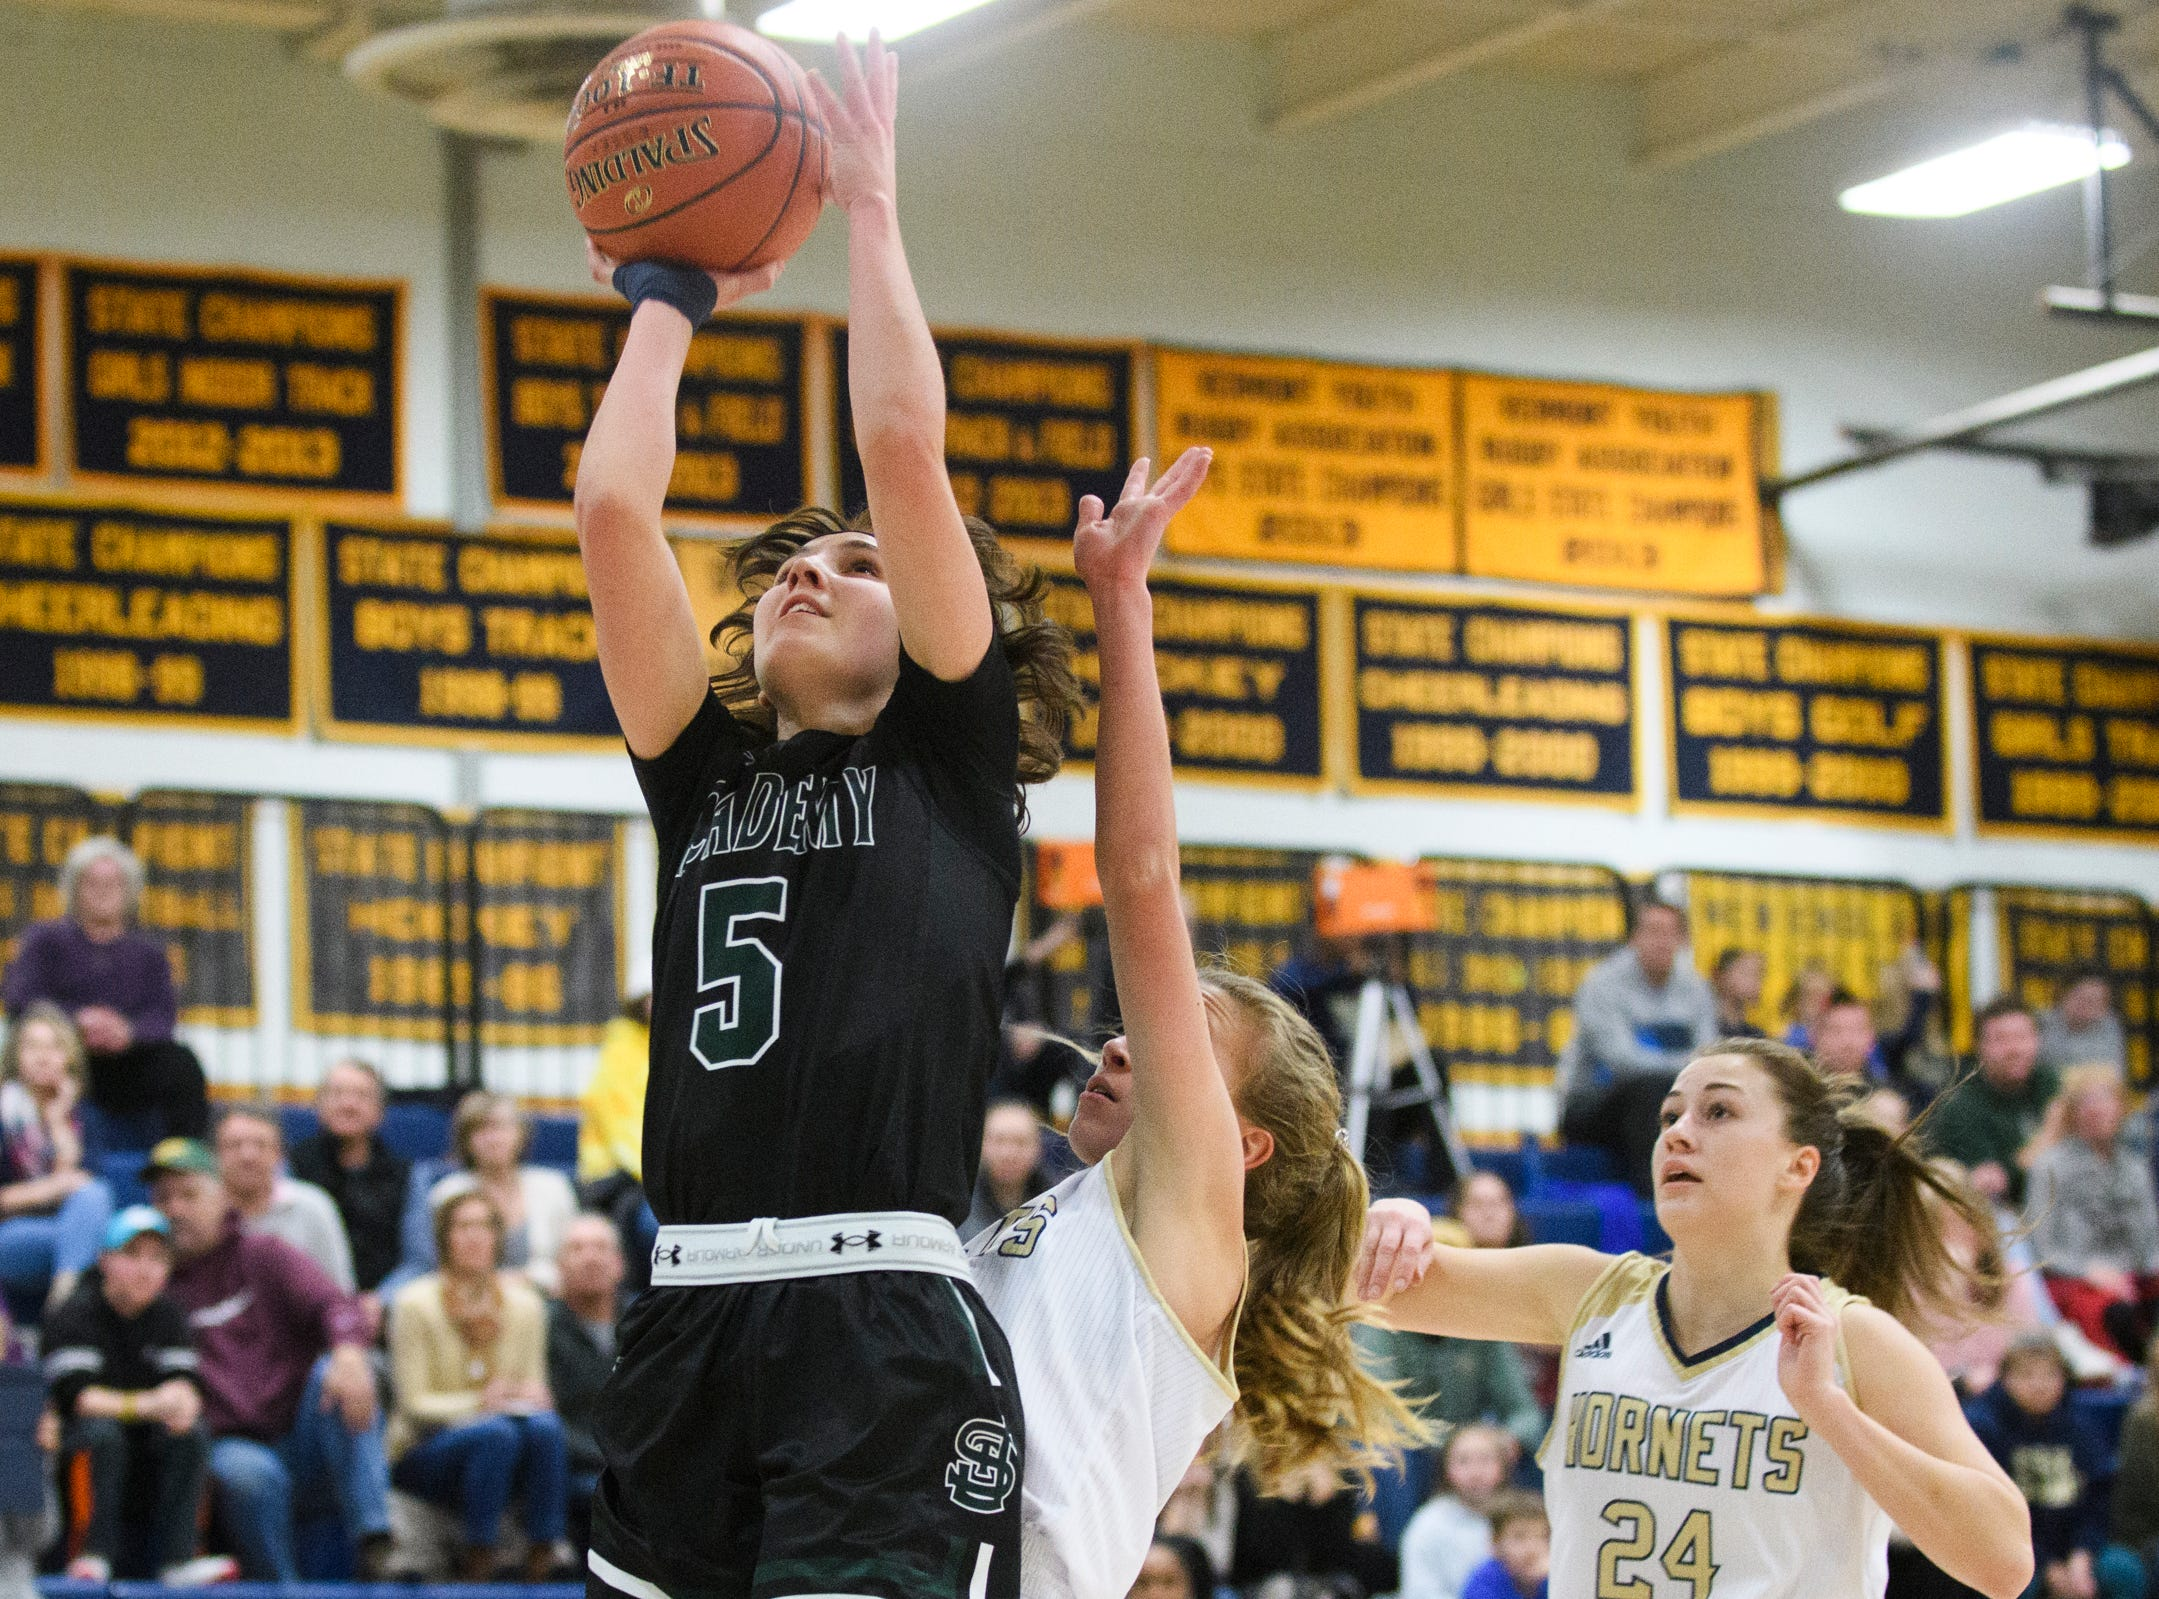 St. Johnsbury's Sadie Stetson (5) leaps for a lay up during the girls basketball game between the St. Johnsbury Hilltoppers and the Essex Hornets at Essex High School on Thursday night January 17, 2019 in Essex.